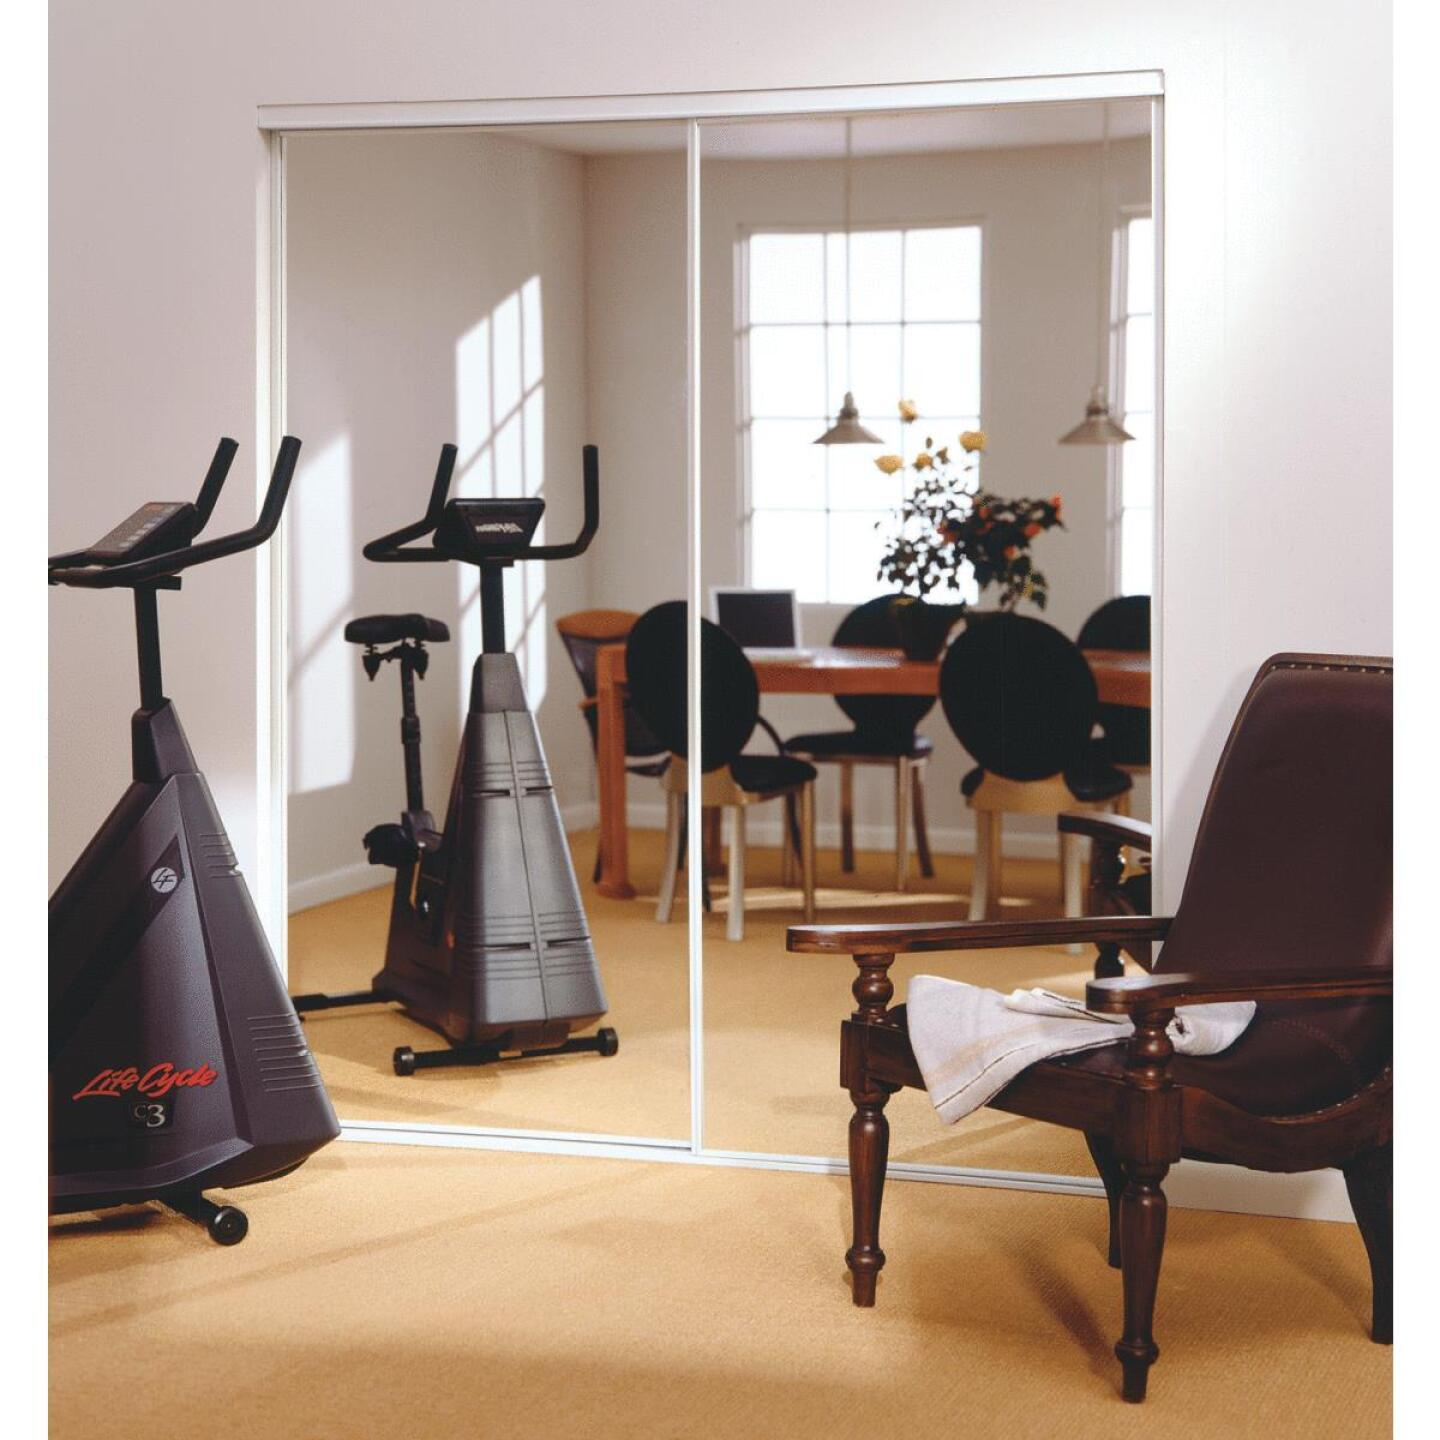 Erias 4260 Series 71 In. W. x 80-1/2 In. H. Bright White Bottom Roll Mirrored Bypass Door Image 1